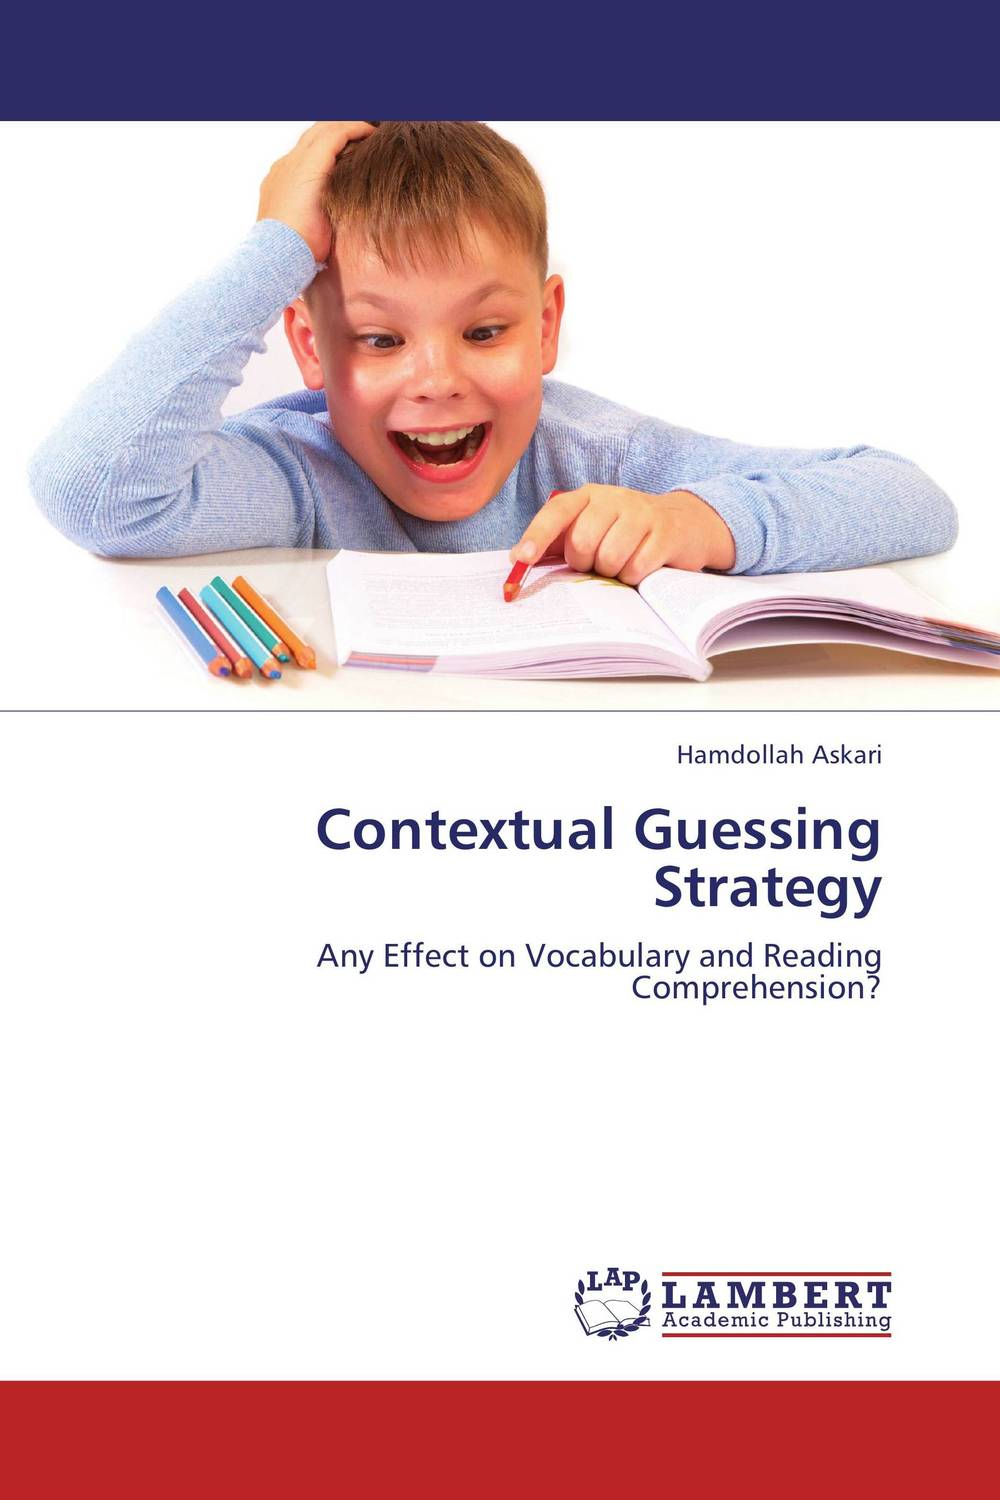 Contextual Guessing Strategy the effect of setting reading goals on the vocabulary retention